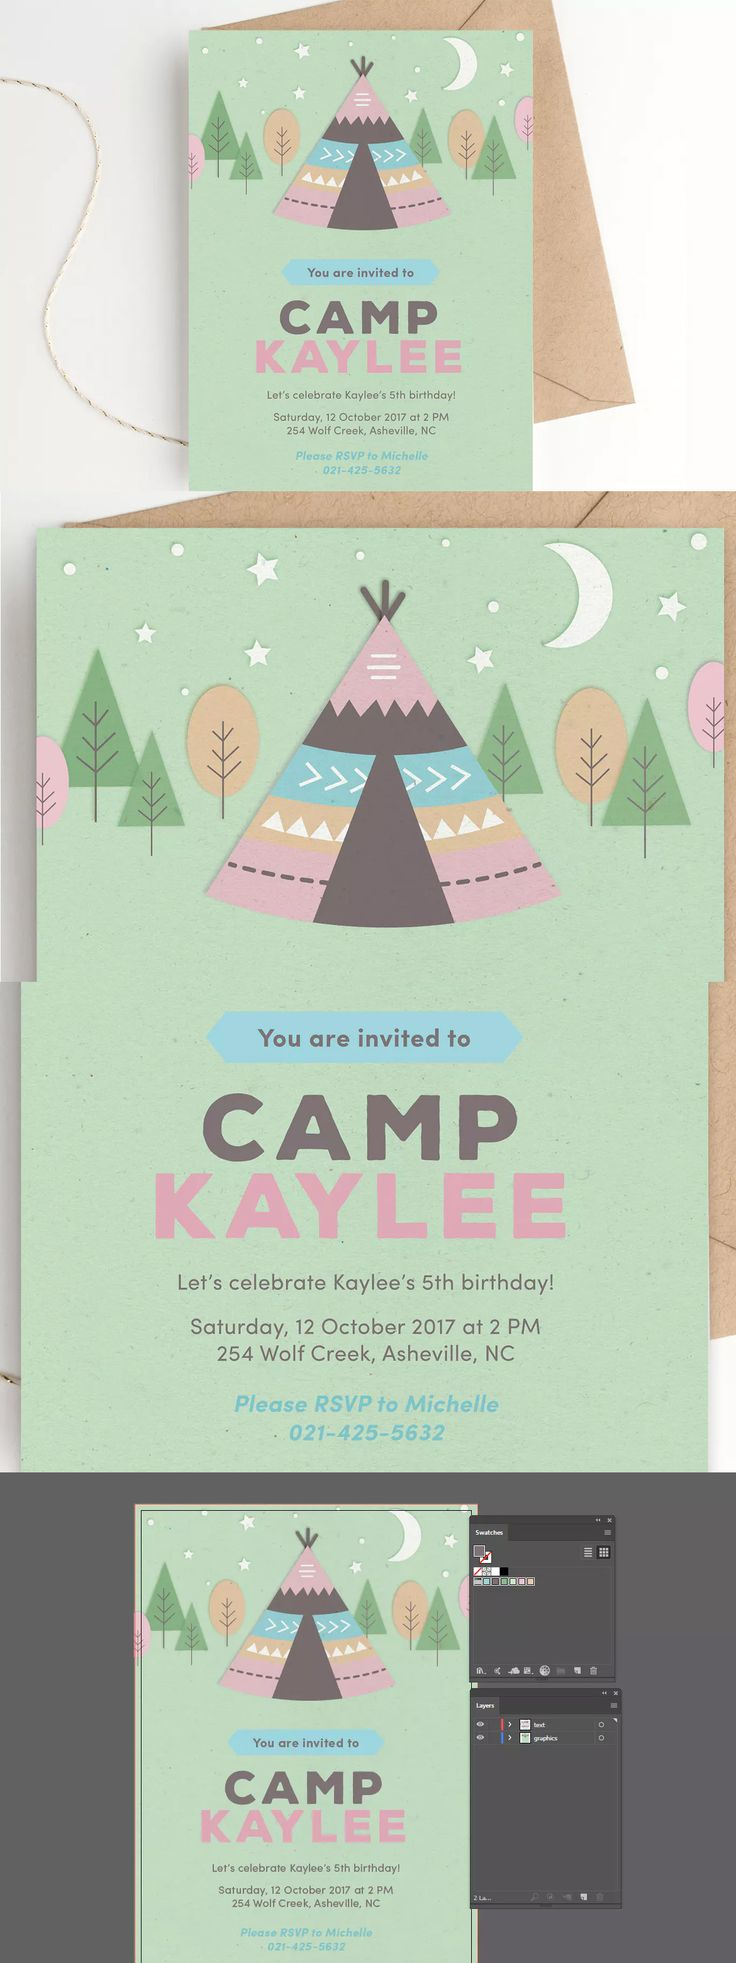 first birthday invitation template india%0A Camping Birthday Party Invitation Template AI  A